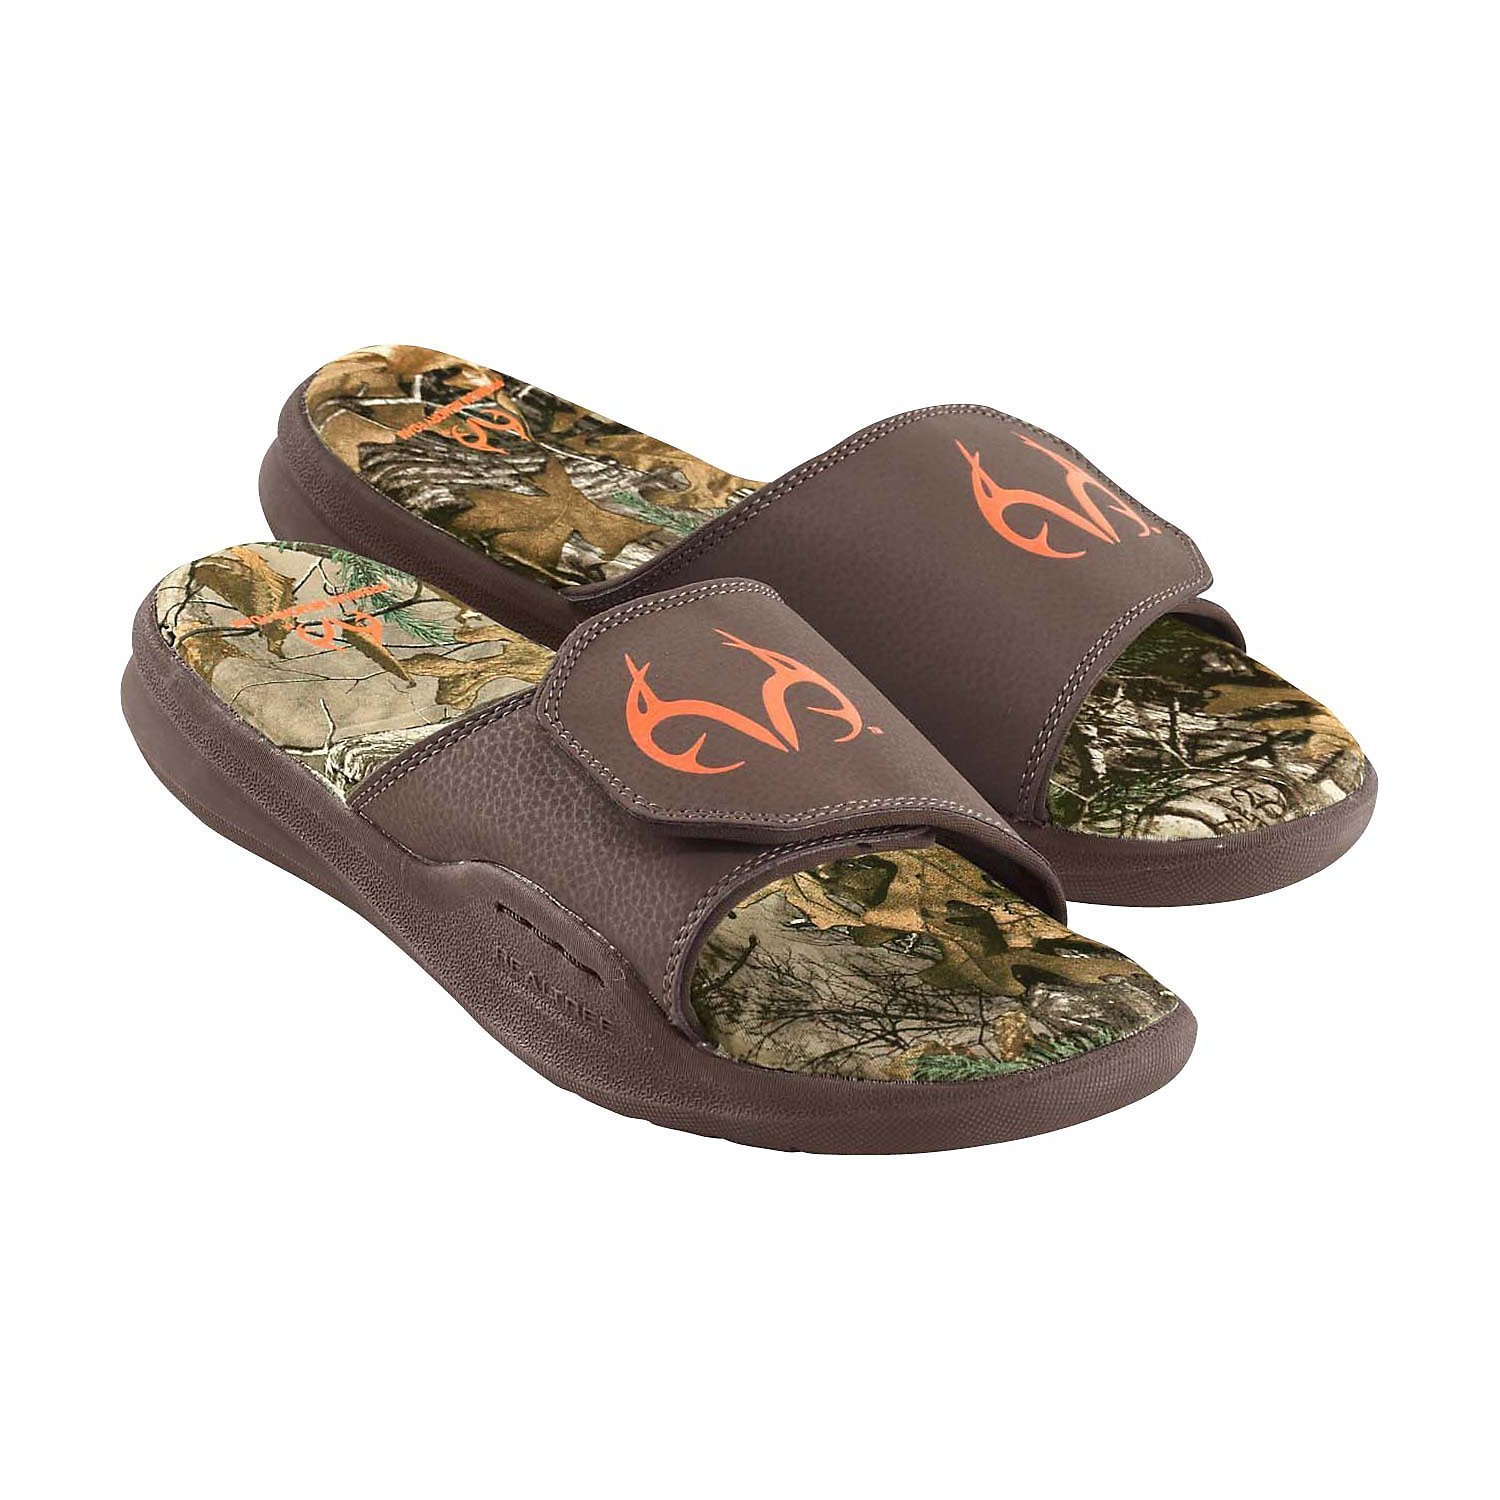 Legendary Whitetails Men's Realtree Camo Back Trail Cushioned Sandals